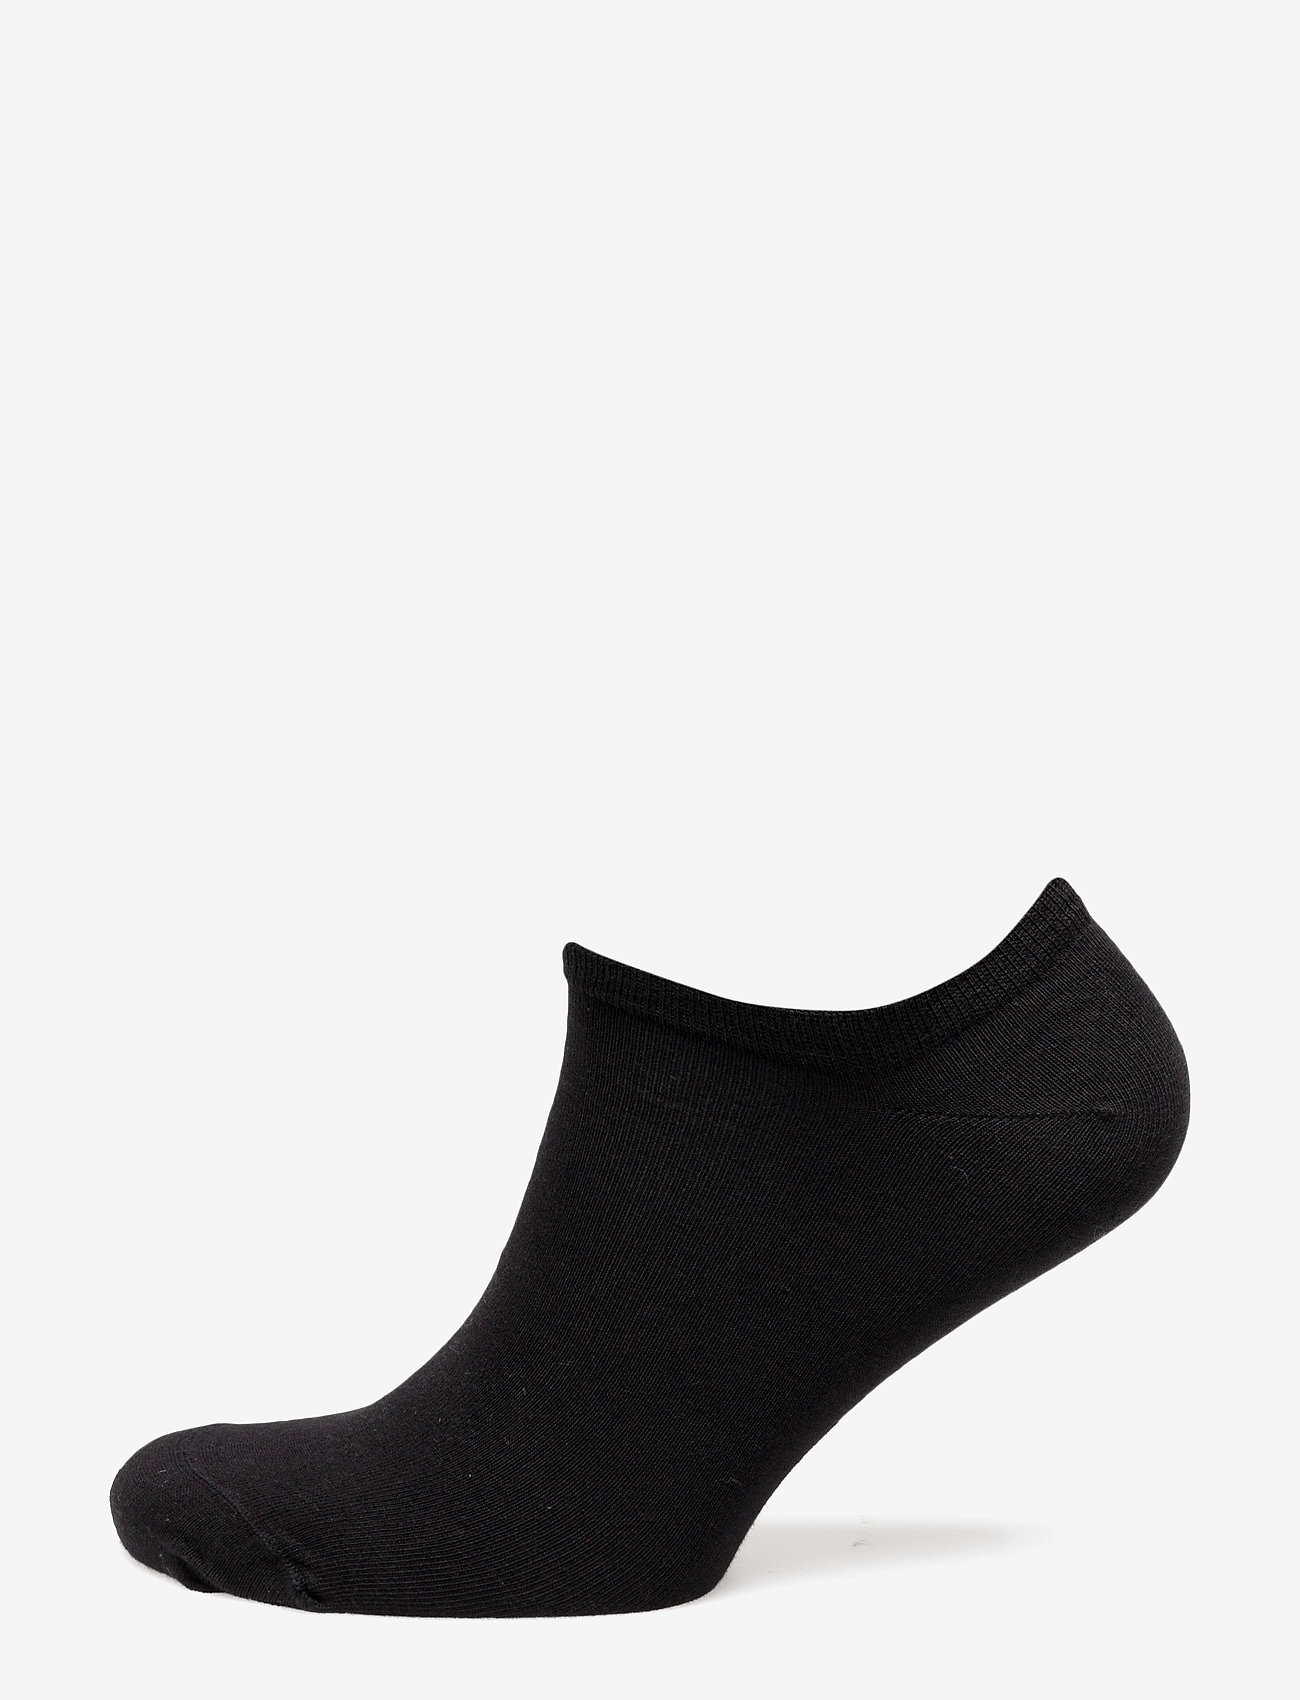 Decoy - Ladies thin sneaker sock - footies - black